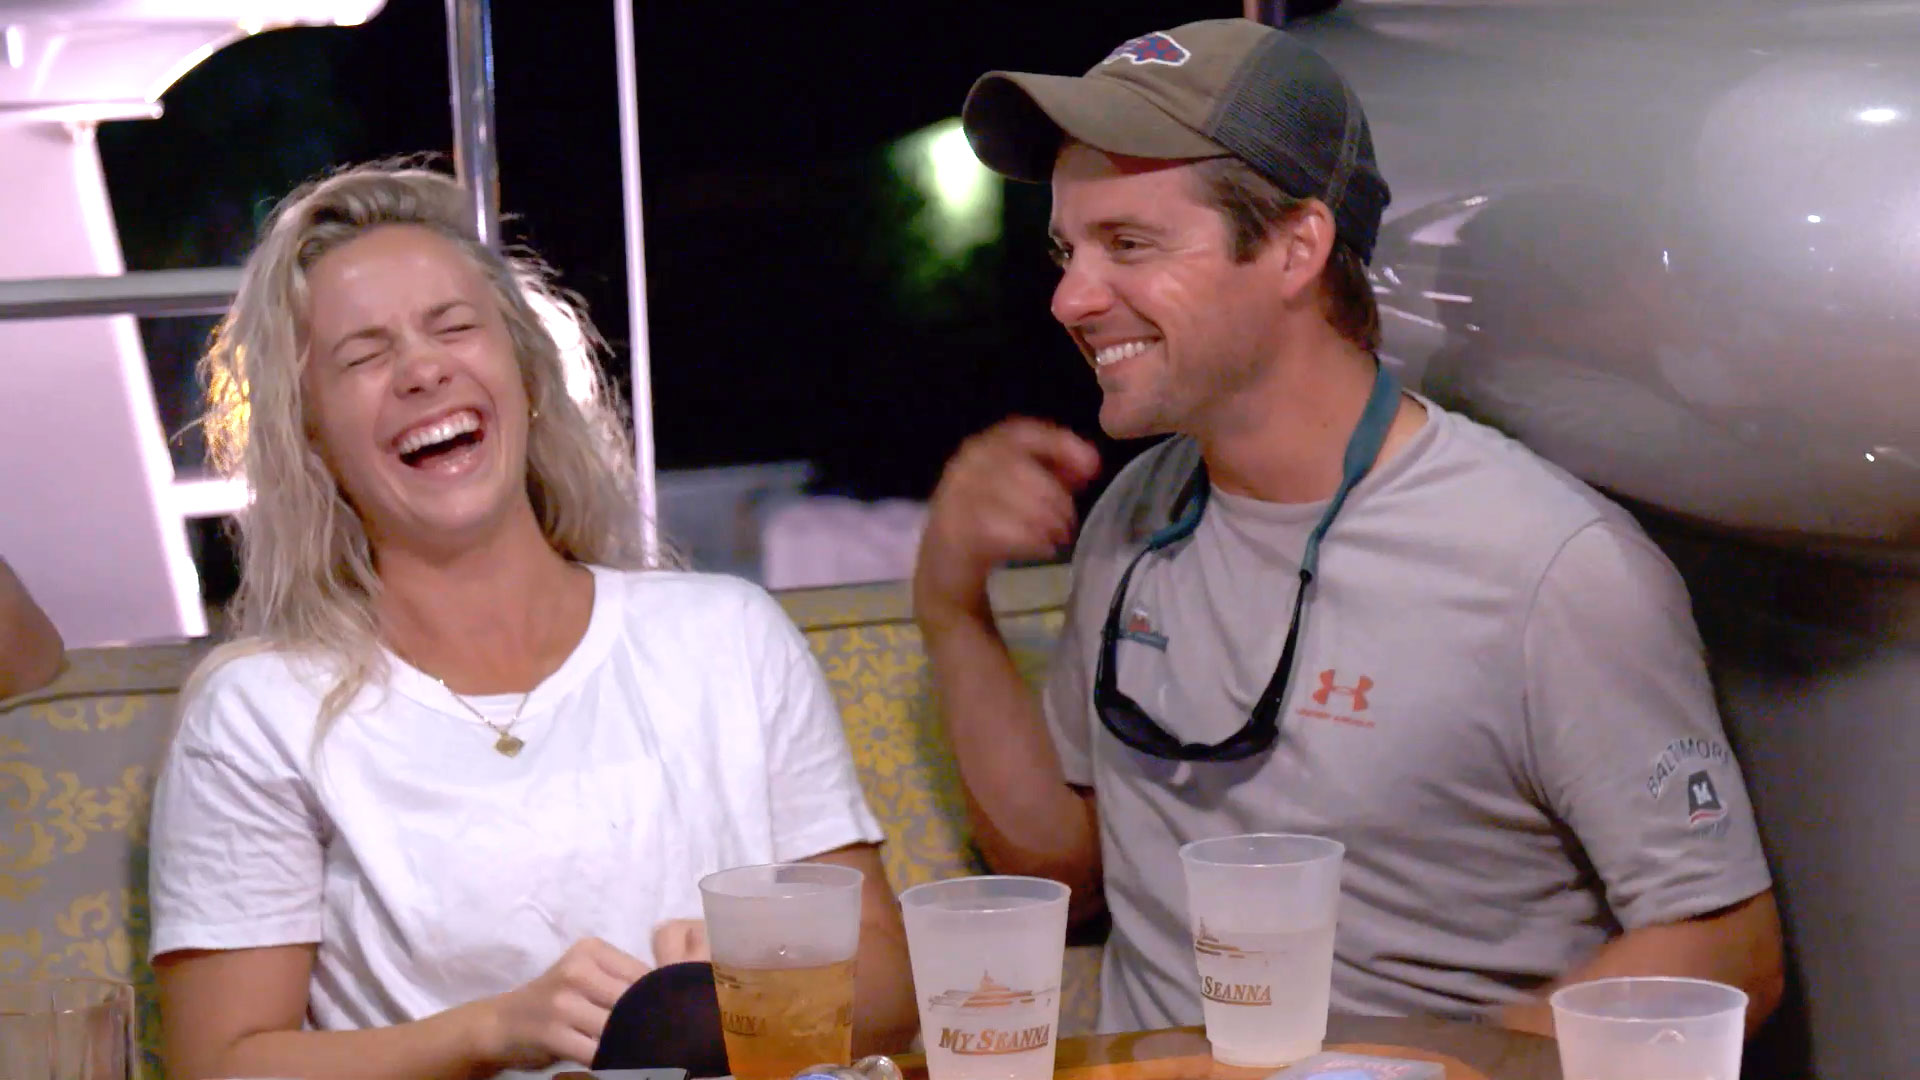 The Below Deck Crew Play Drunk Truth Or Dare